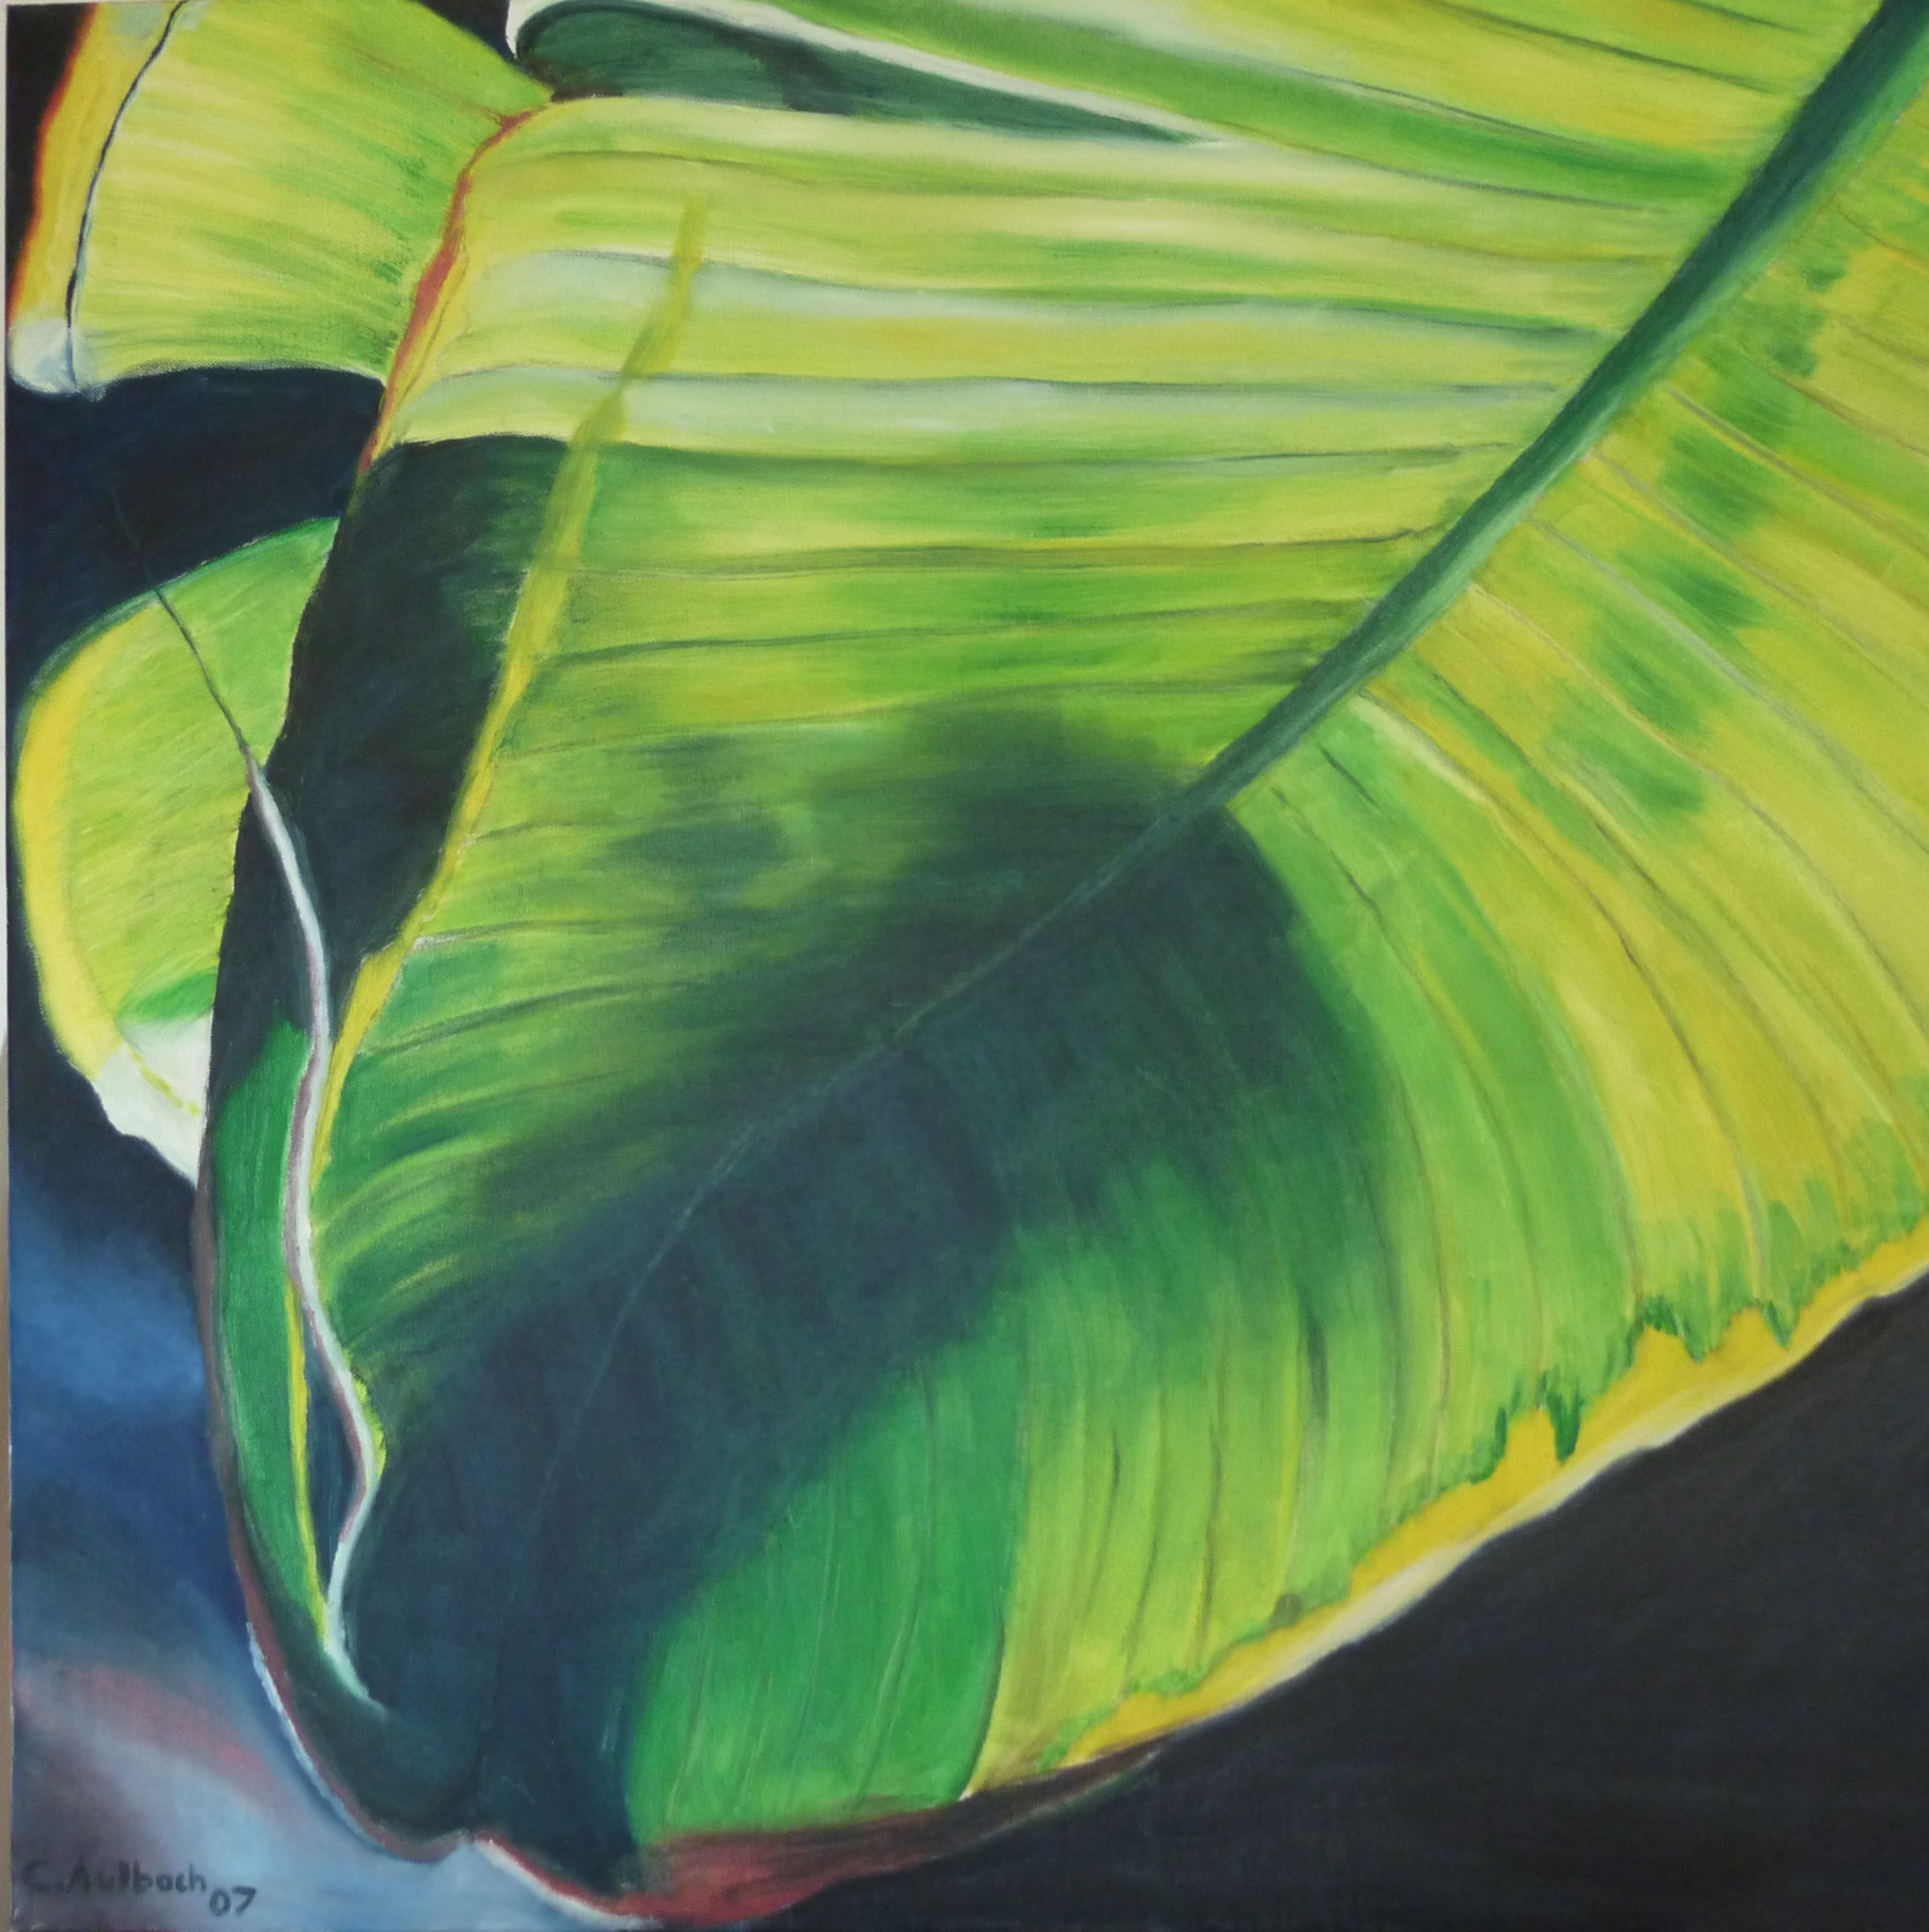 WWW (What a wonderful world) green II, 2007, 80 x 80cm, Öl auf Leinwand